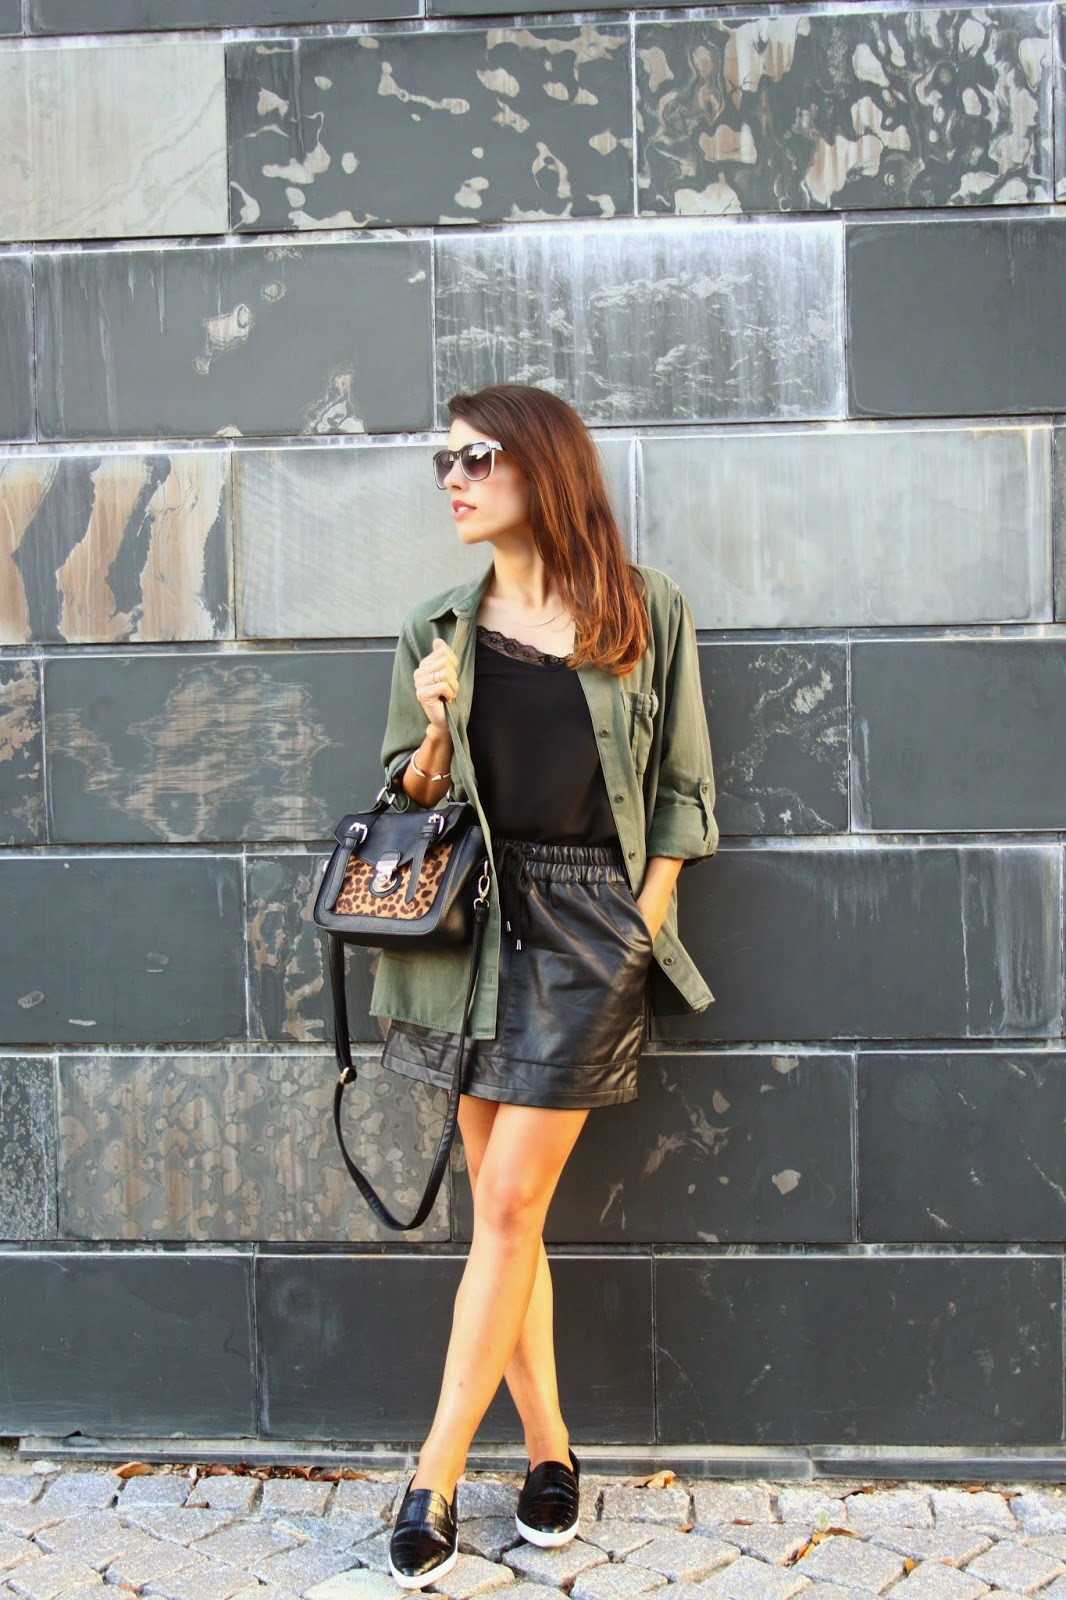 http://ilovefitametrica.blogspot.pt/2014/10/khaki-leather-black.html